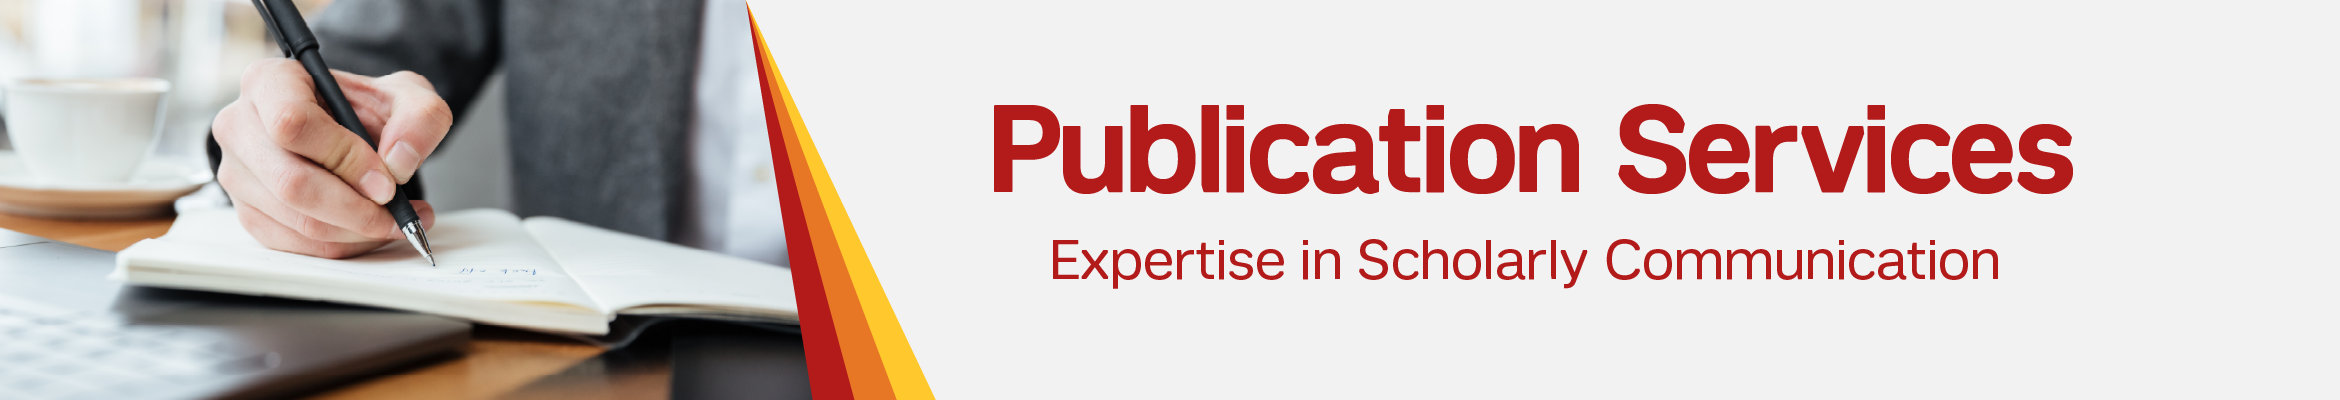 Banner. Image part: Close-up of hand holding a pen and writing in a notebook. Text reads: Publication Services: Expertise in Scholarly Communication